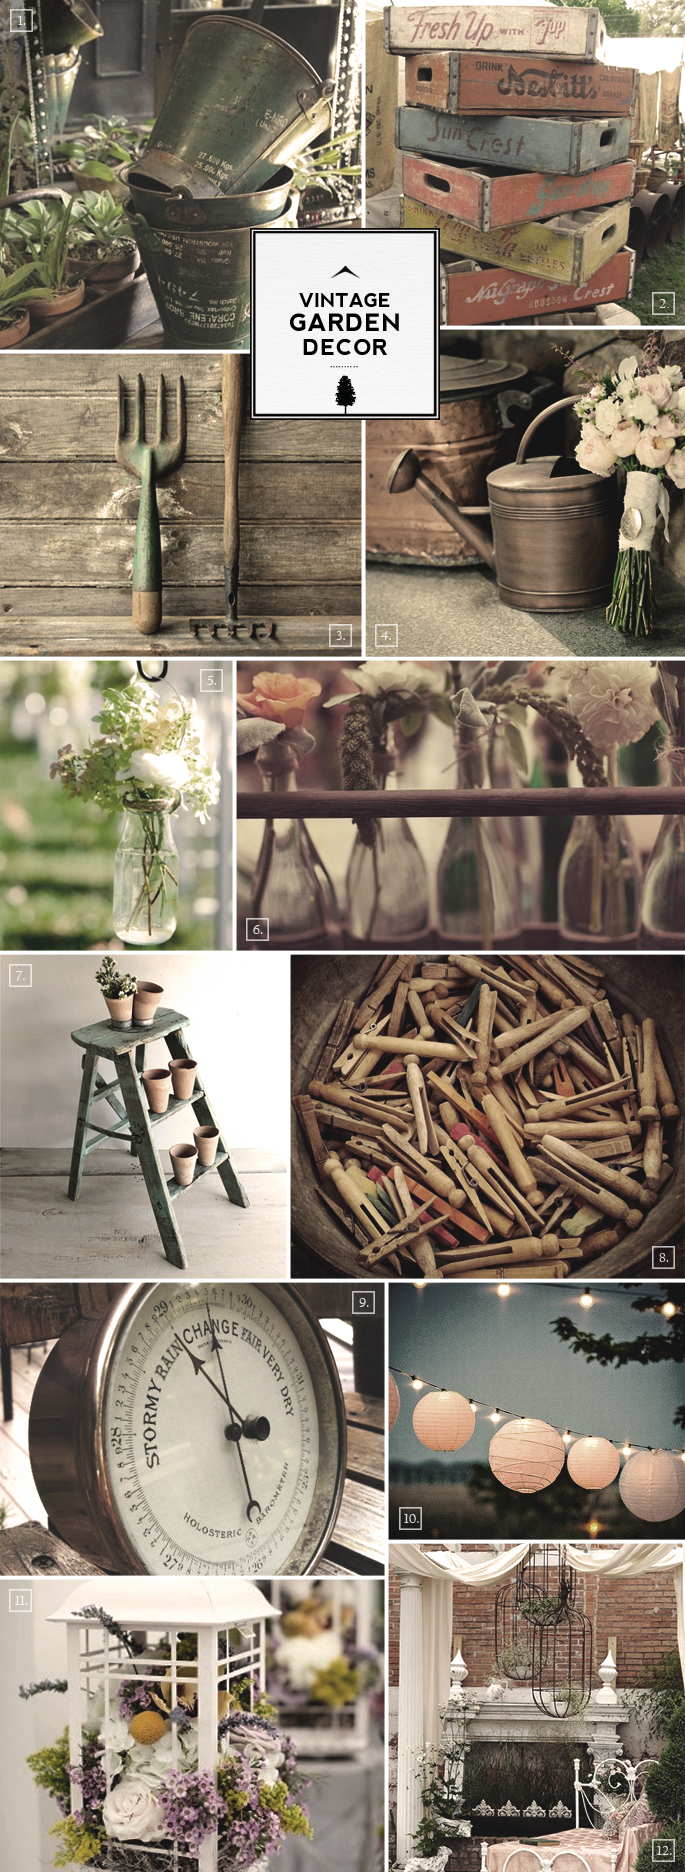 Vintage garden decor ideas photograph ideas for vintage ga for Garden decor accents